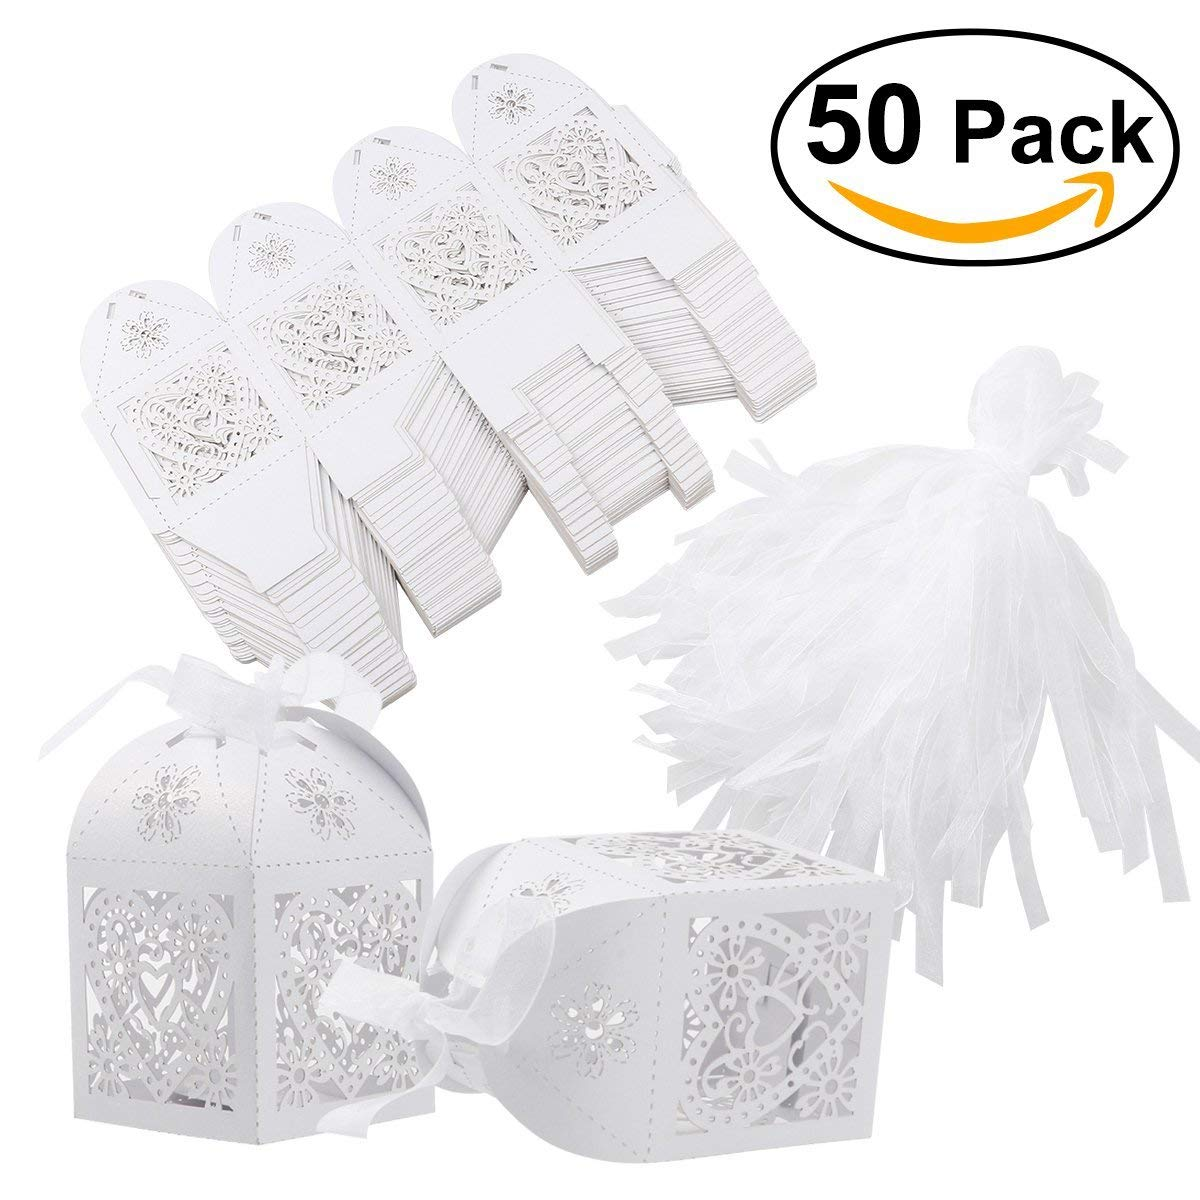 Tinksky 50pcs Wedding Favor Candy Boxes Hollow Style Gift Boxes with Ribbons(White)